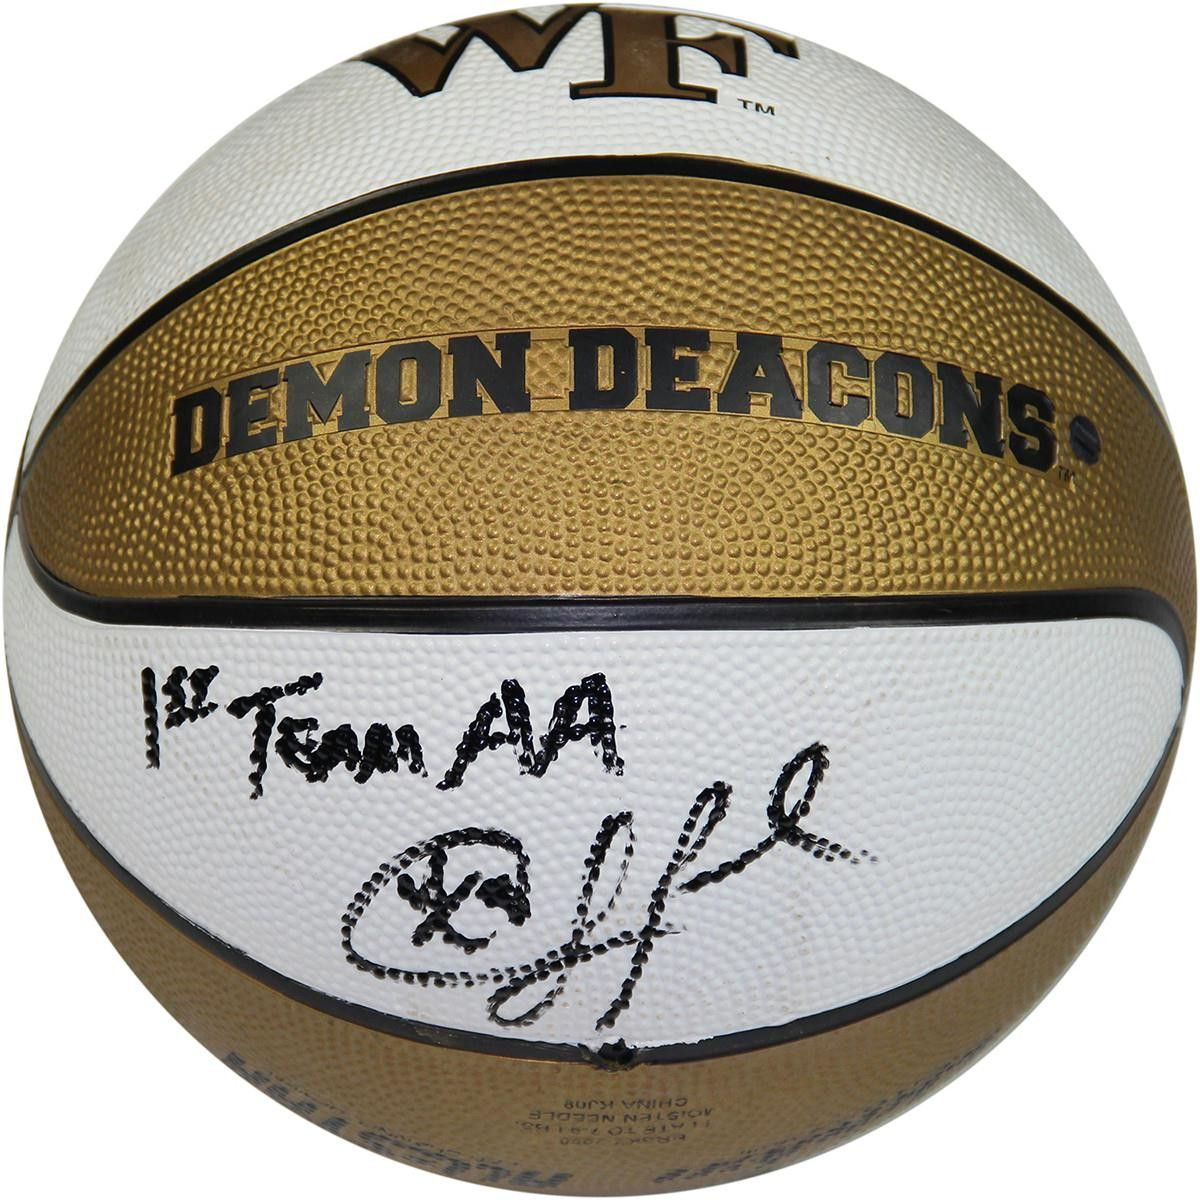 Chris Paul Signed Wake Forest Rubber Full Size Basketball w 1st Team AA Insc.